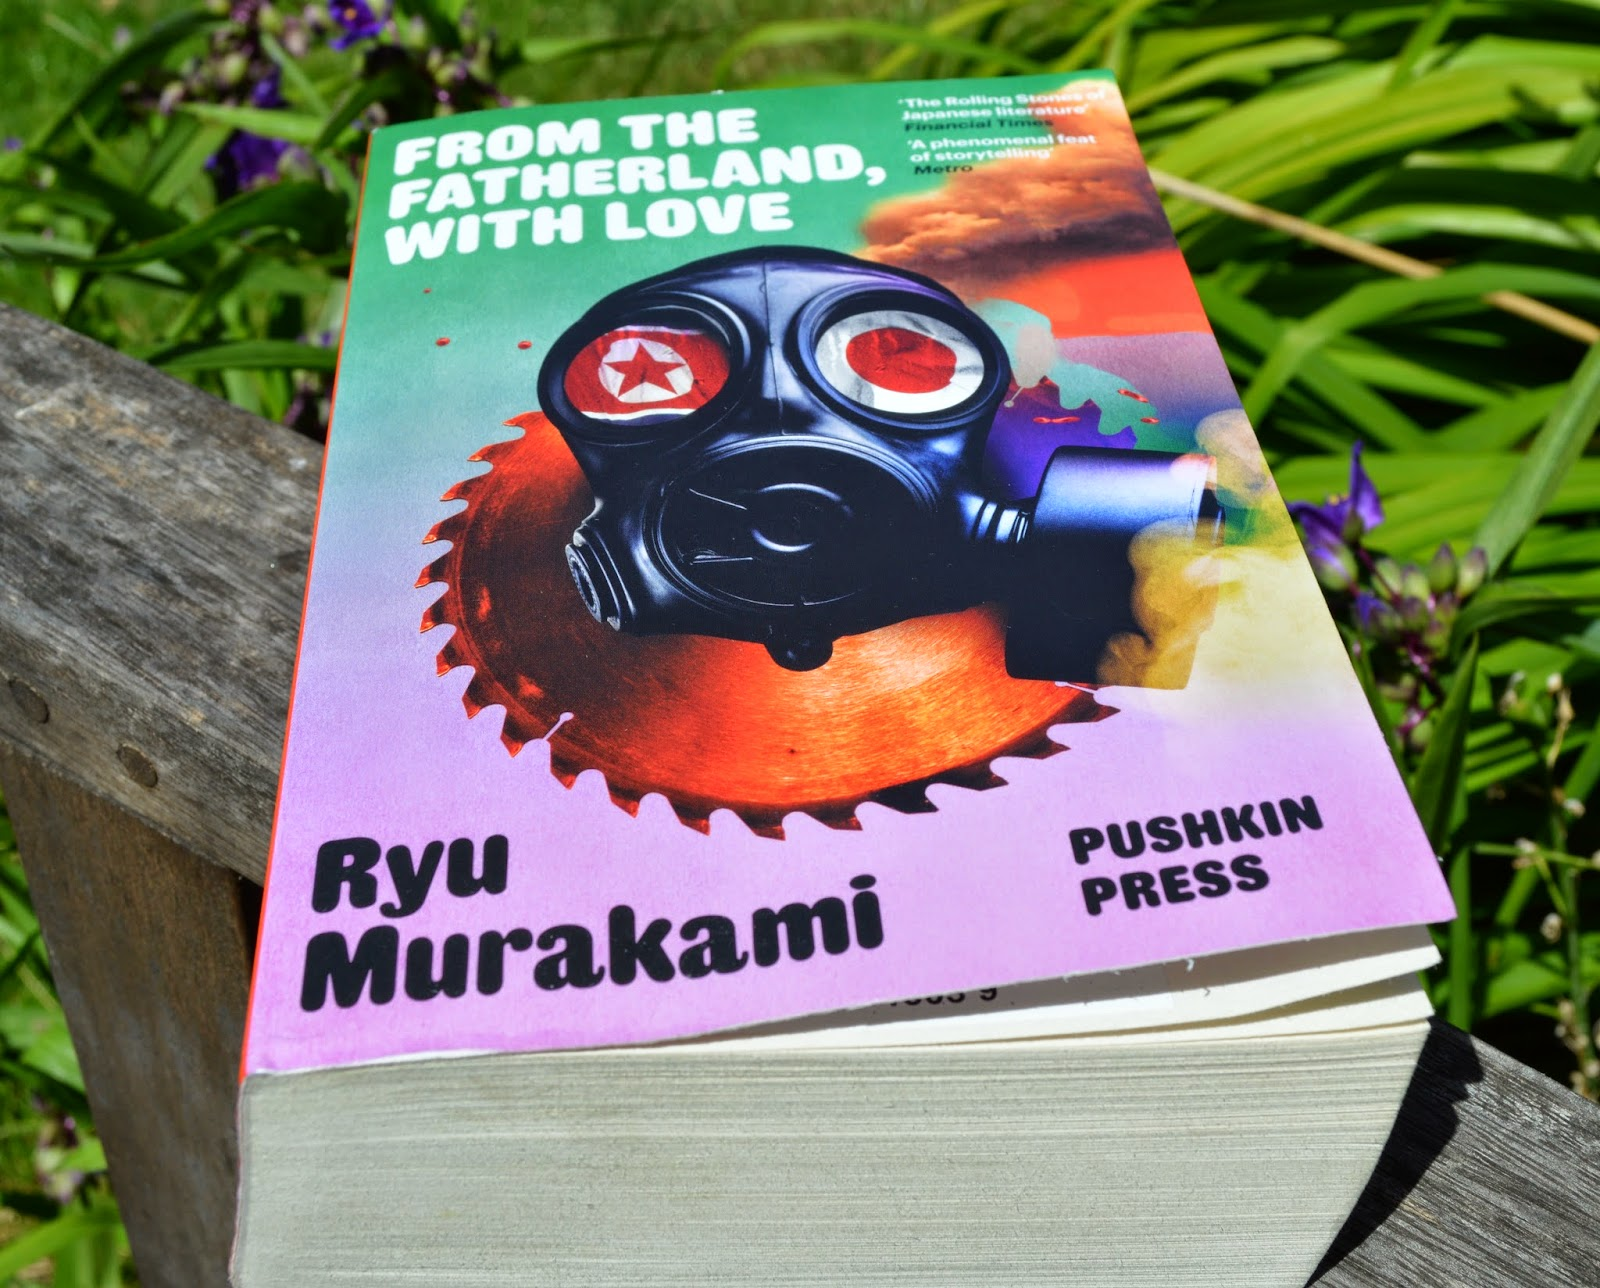 photo, photograph, book cover, paperback, UK edition,  Ryu Murakami, From the Fatherland with Love, Japan, speculative fiction, North Korea,